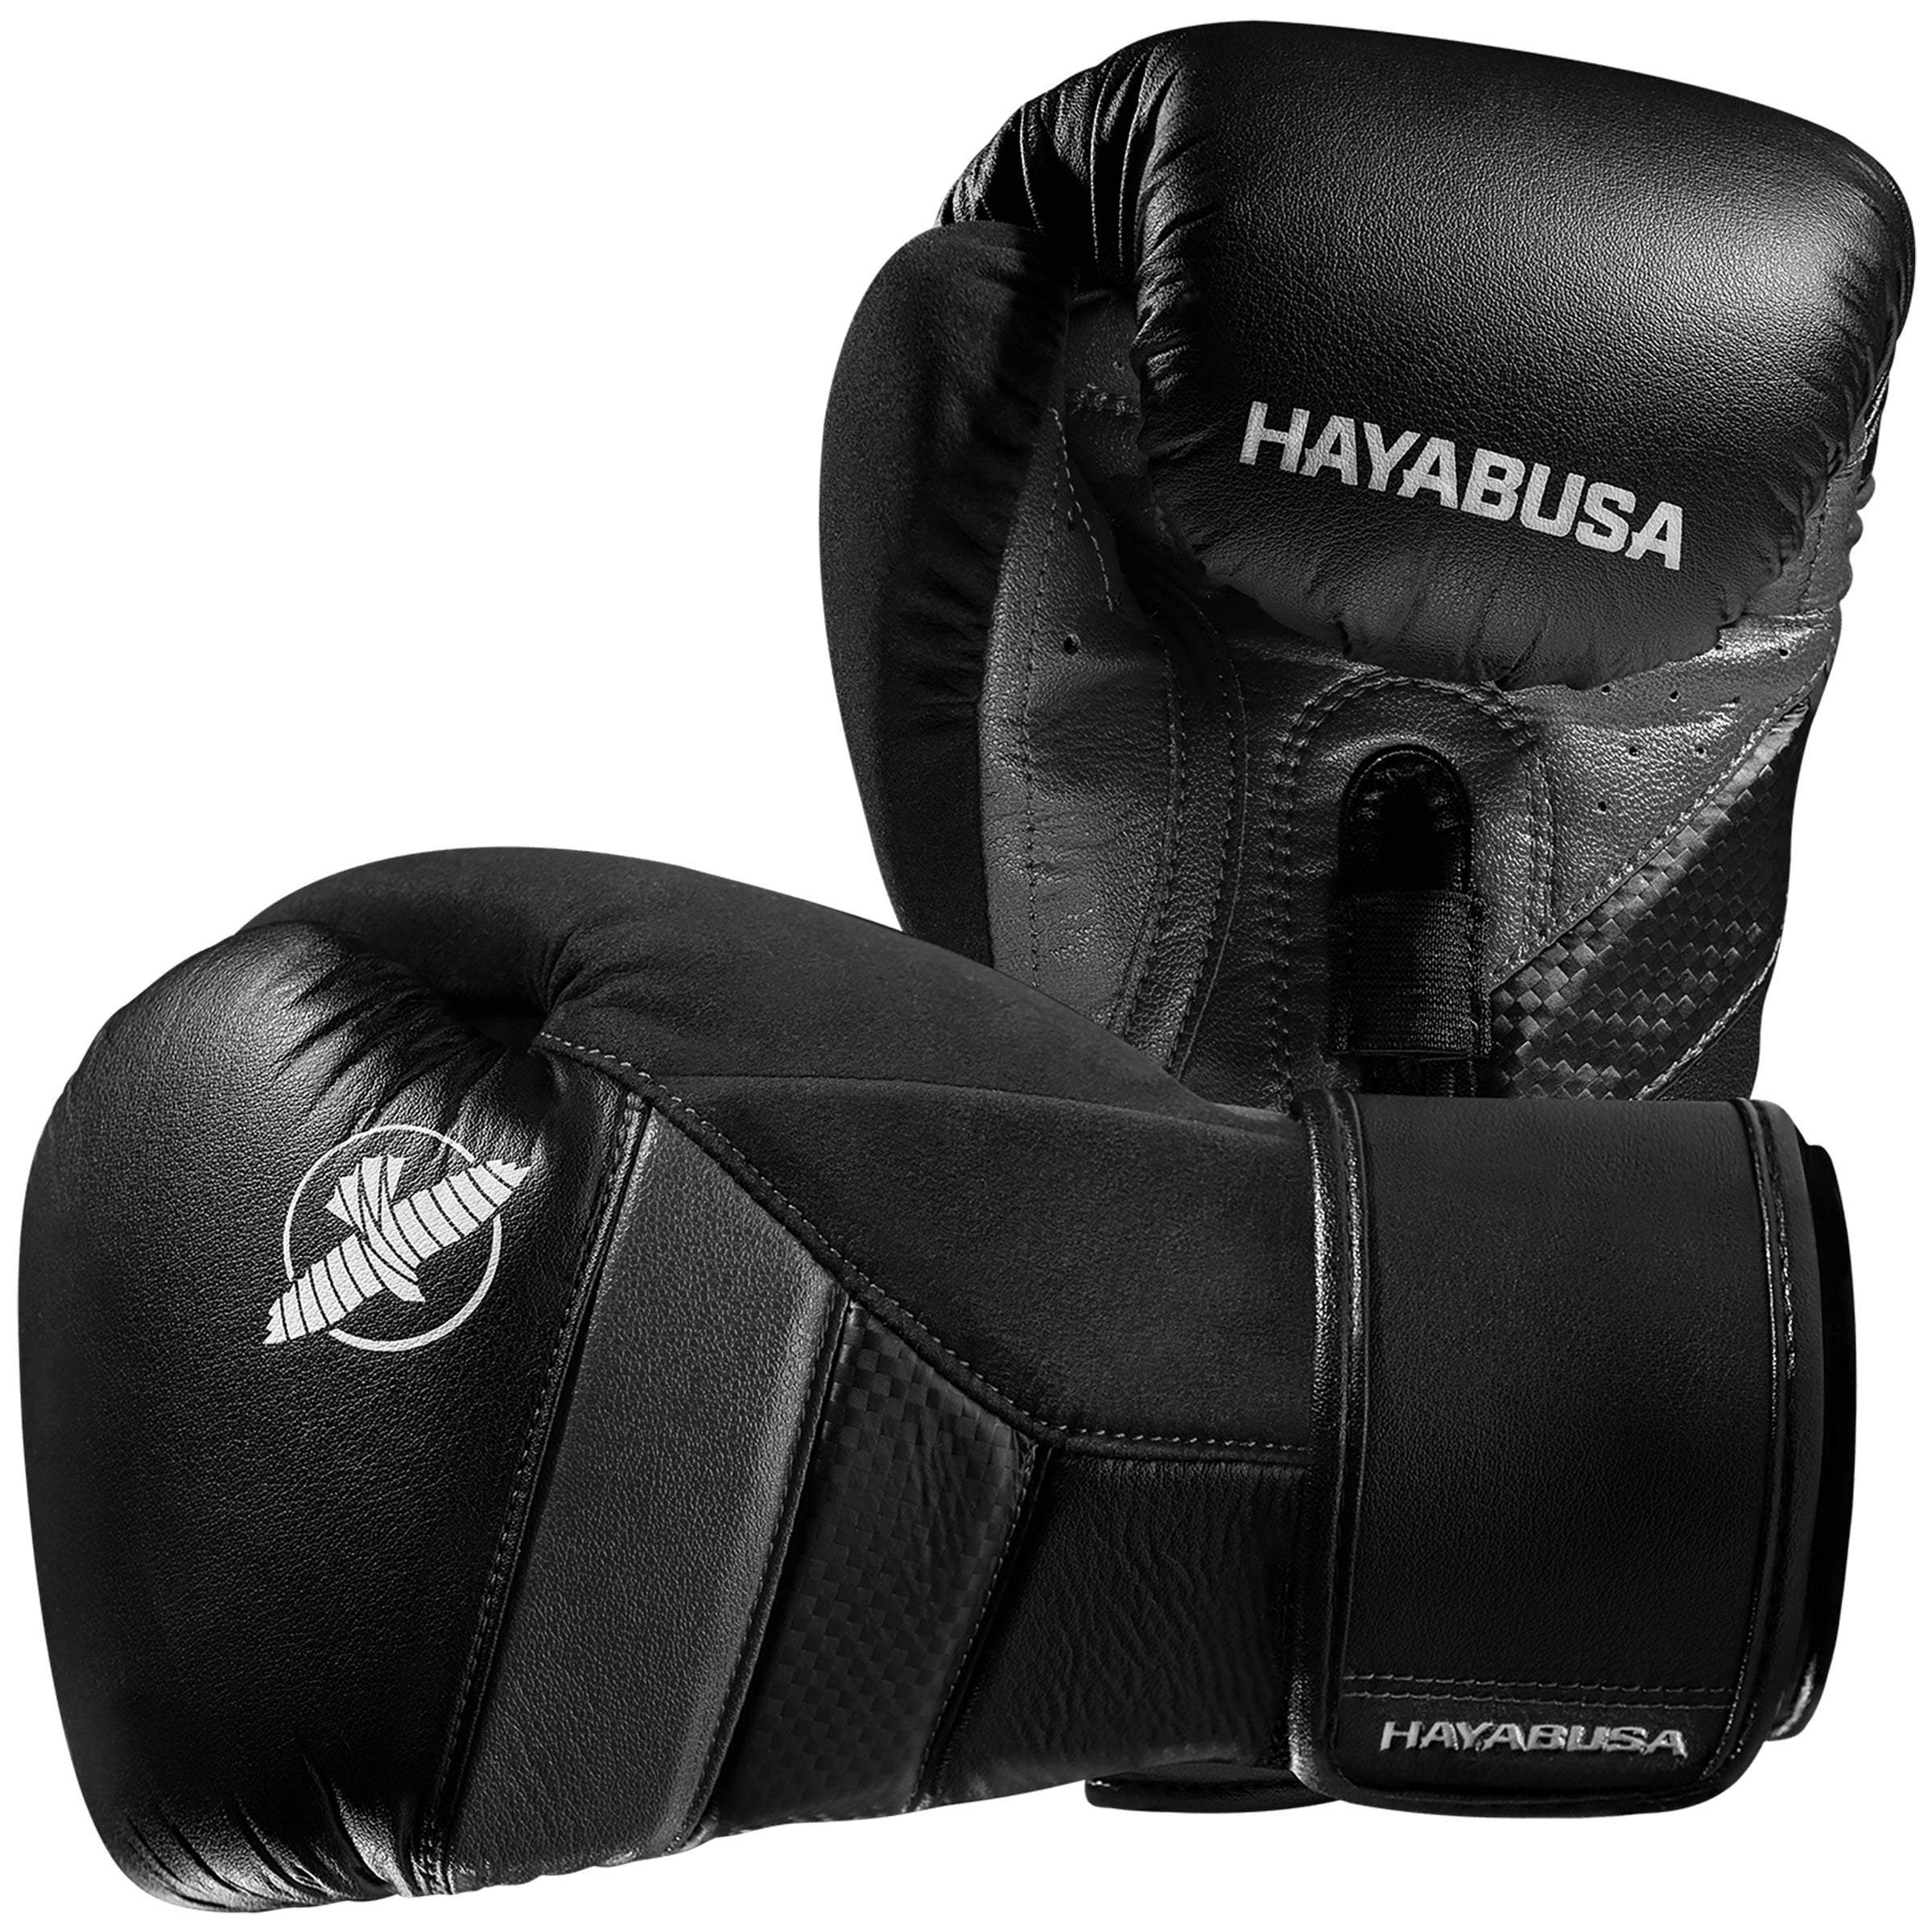 Image of Hayabusa T3 Boxing Gloves